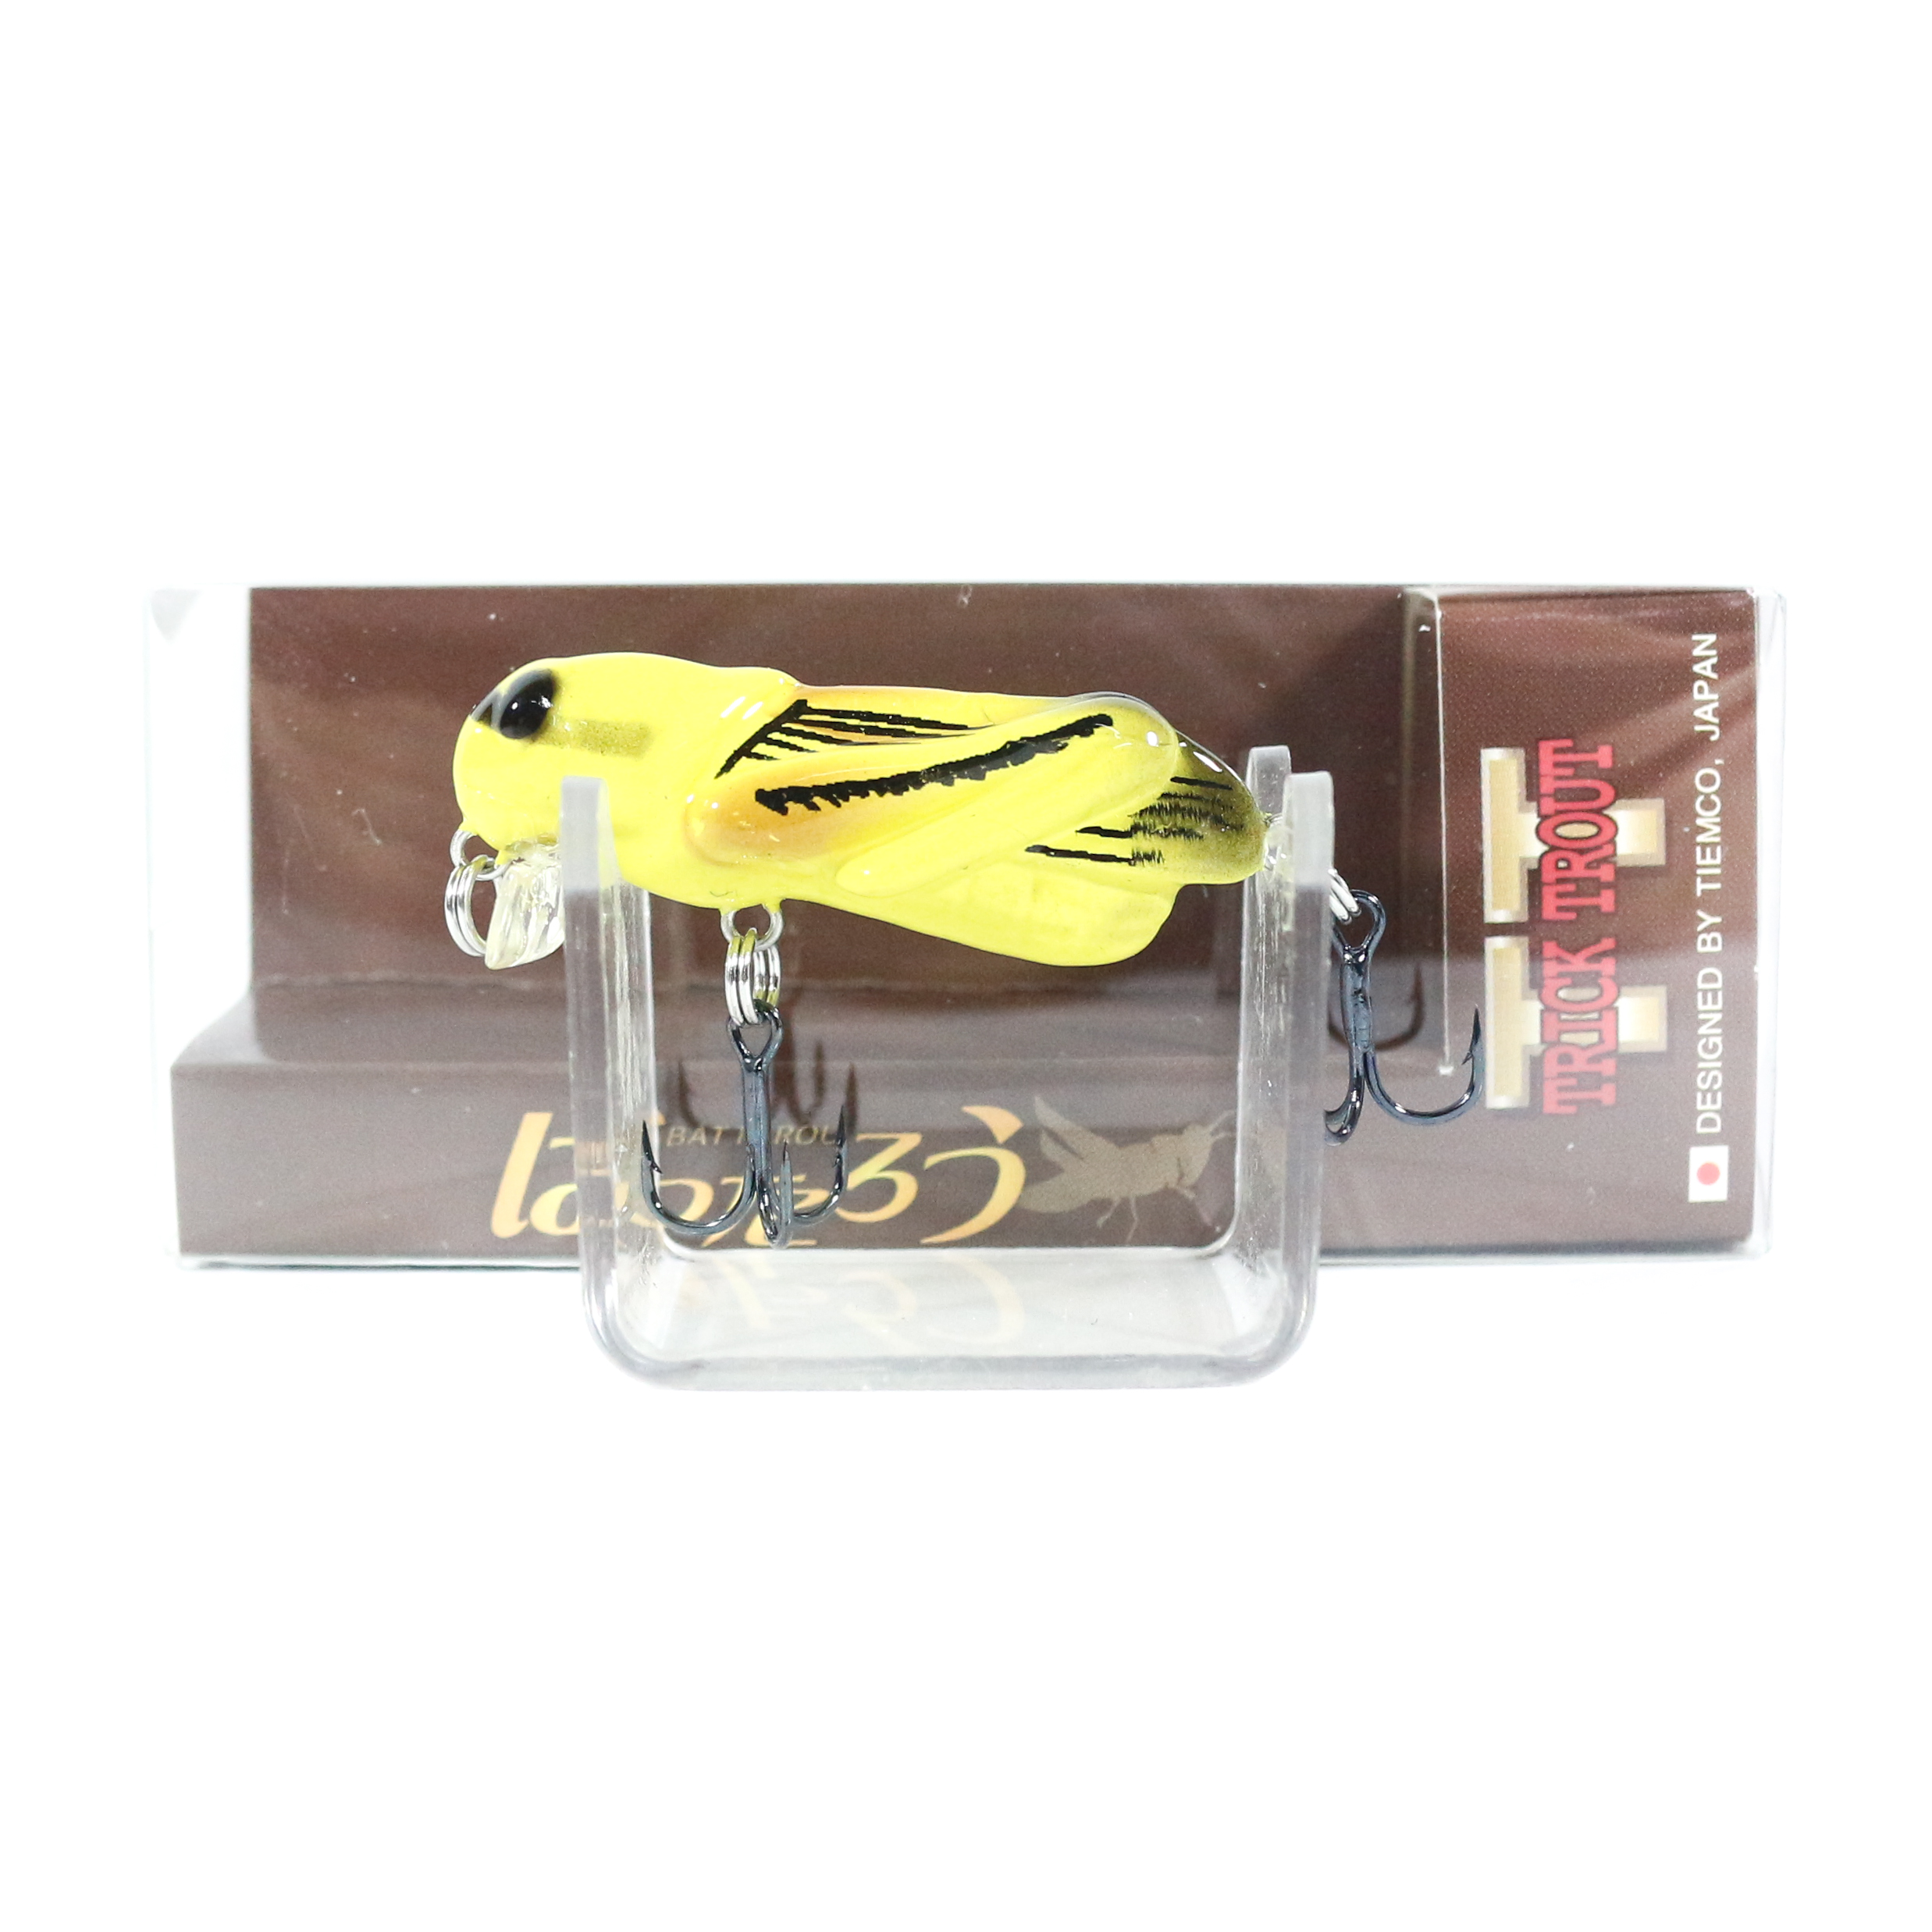 Tiemco Grasshopper Tiny Trick Trout Floating Lure TTB-002 (6667)